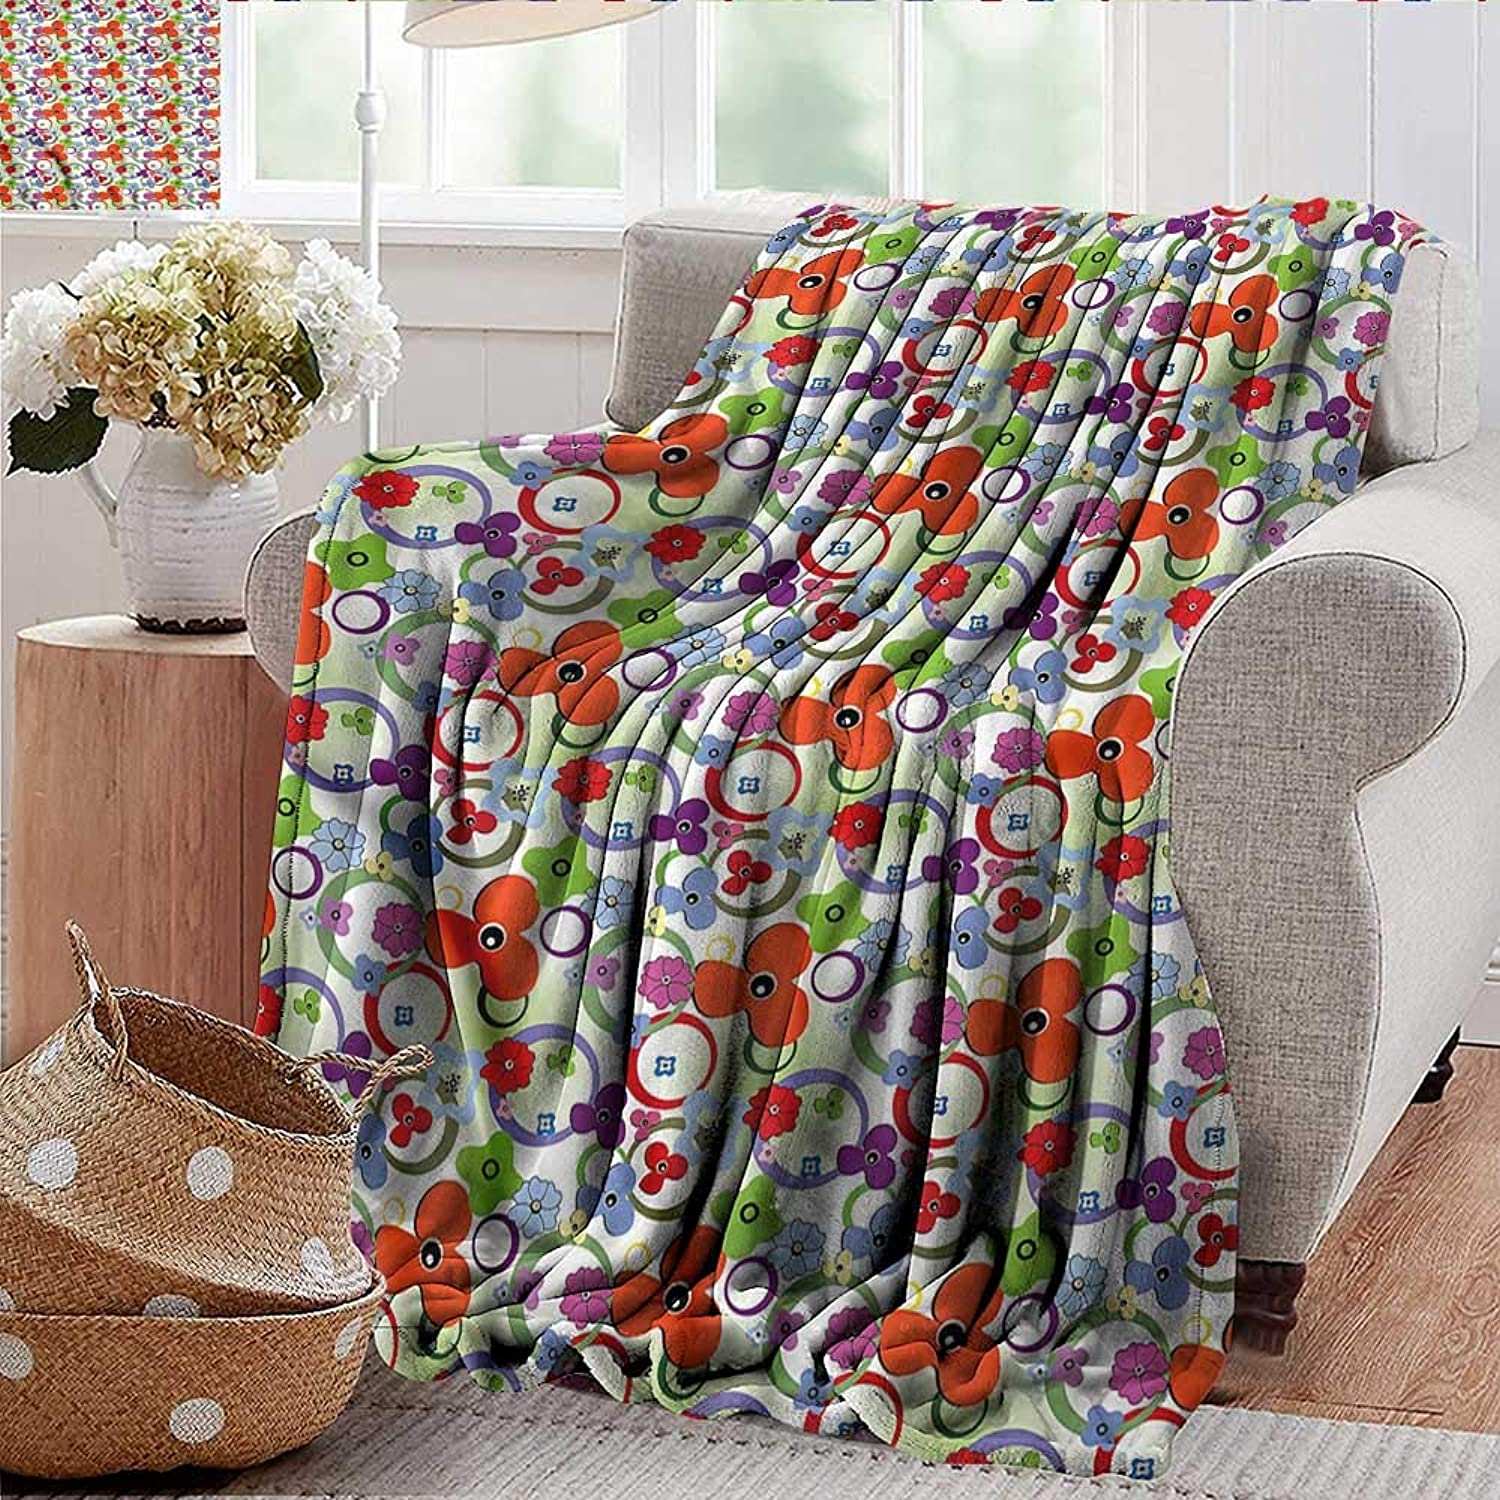 Xaviera Doherty Weighted Blanket for Kids colorful,Rainbow Toned Flowers Soft Summer Cooling Lightweight Bed Blanket 50 x60